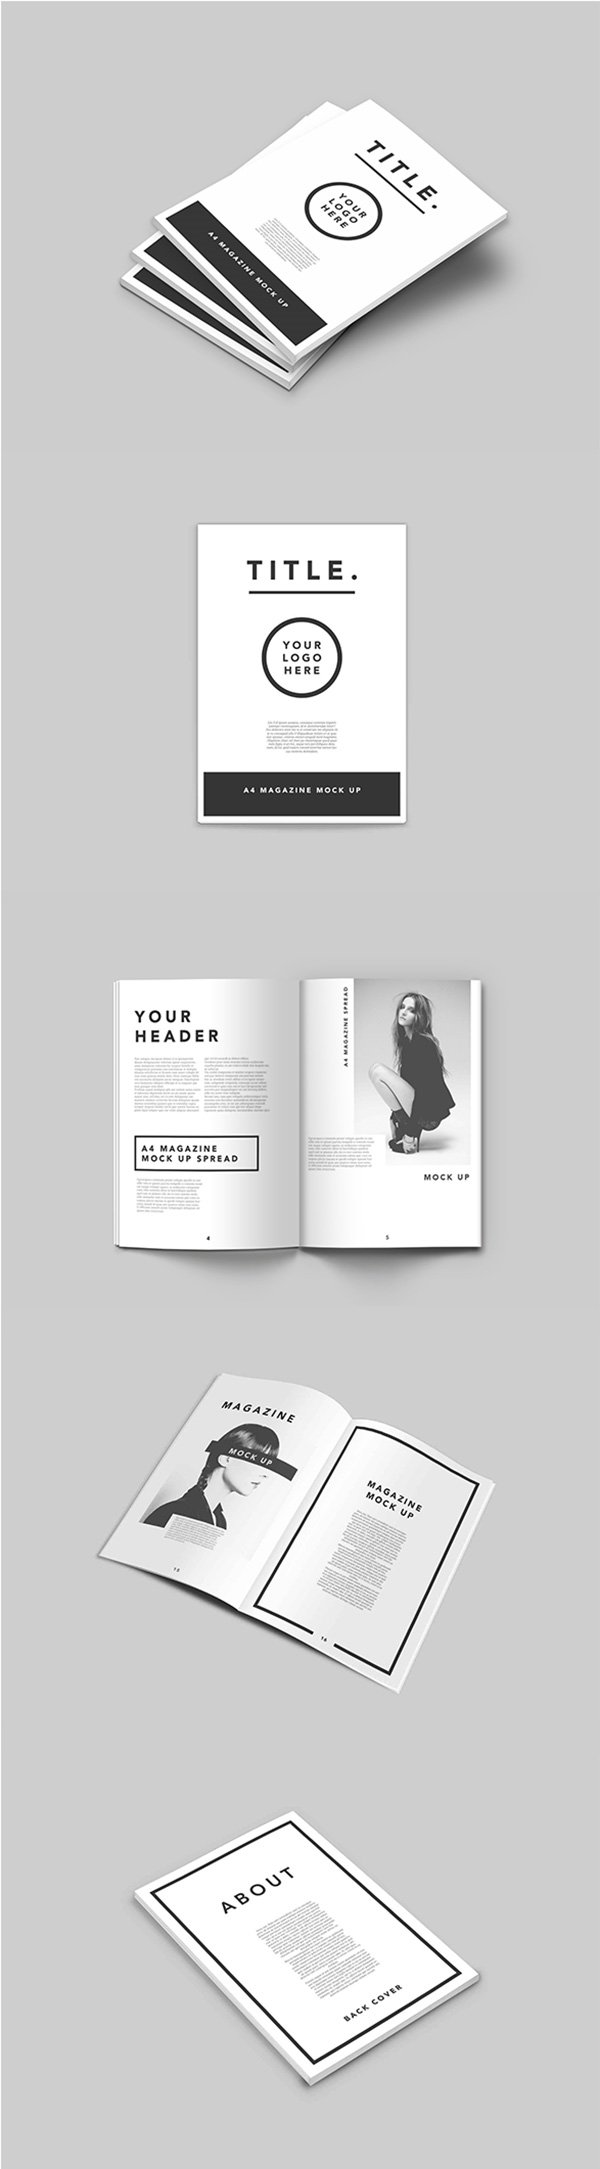 brochure mock up template - 75 free psd magazine book cover brochure mock ups